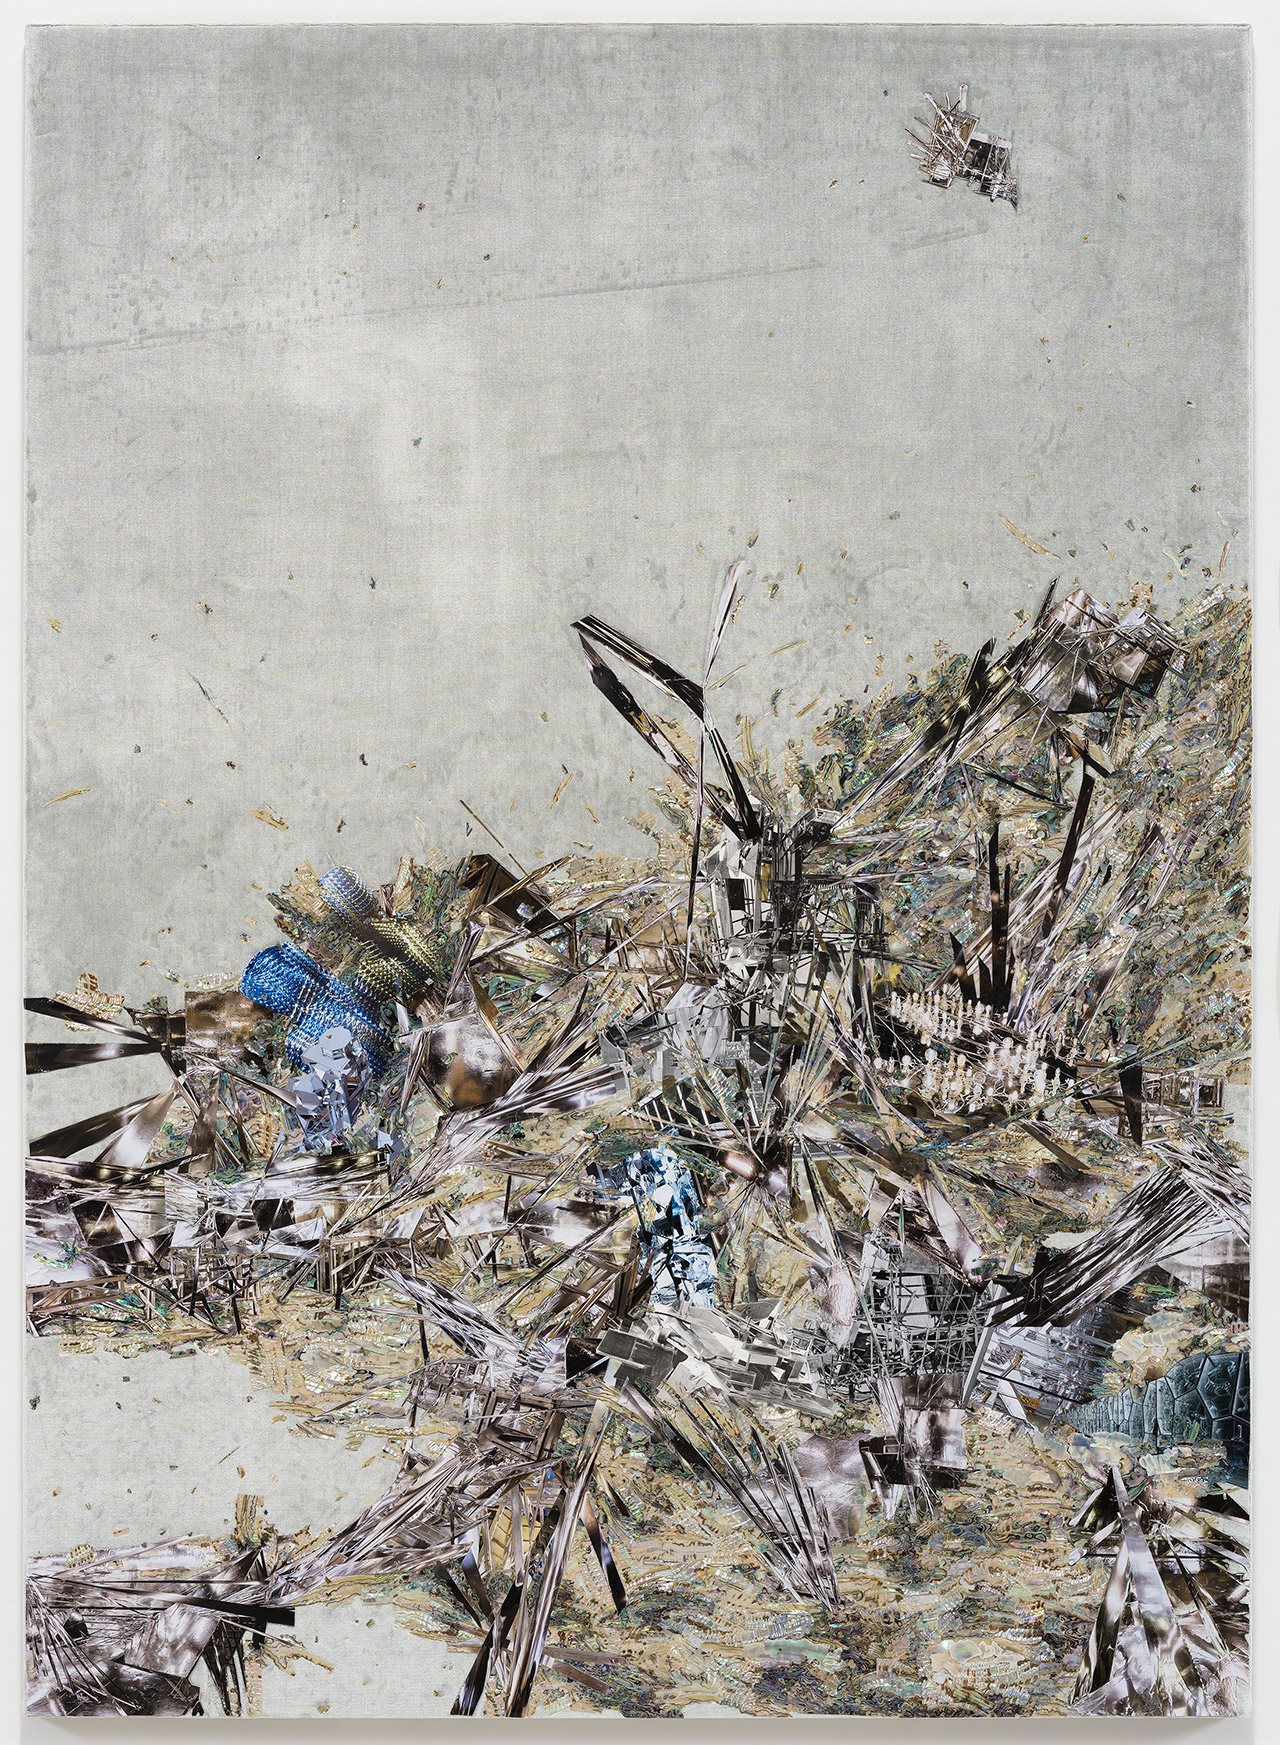 Untitled (Willing To Be Vulnerable - Velvet #9 JTVP 3582/23 CE), 2019 Mother of pearl, acrylic paint, collage on silk velvet, 180 x 130 cm (194 x 144 x 12 cm with frame). The Rachel and Jean-Pierre Lehmann Collection Photo: Jeon Byung-cheol. Photo courtesy: Lehmann Maupin, New York, Hong Kong, Seoul and London